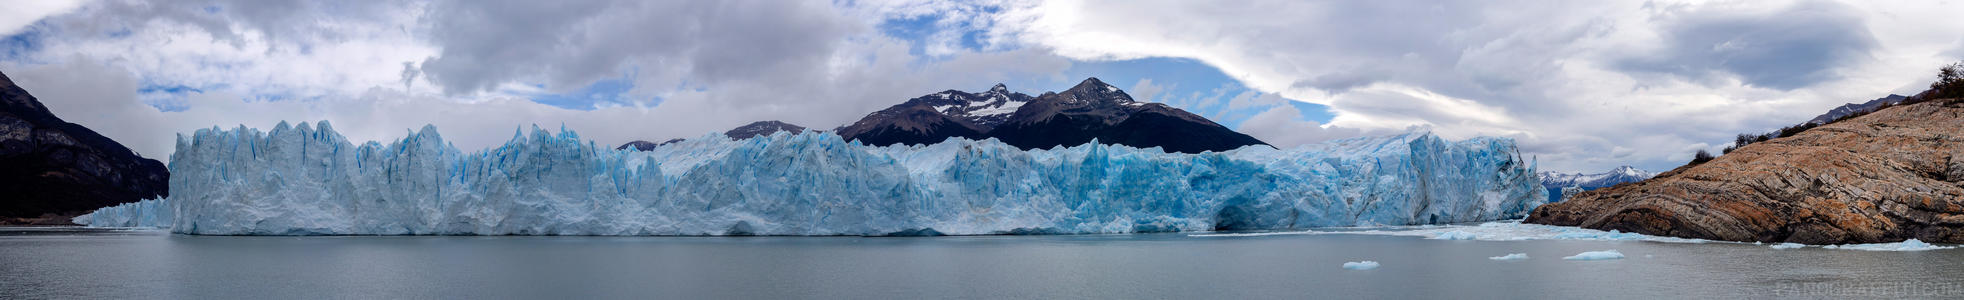 Perito Moreno Glacier at Water Level - Less than half of the Perito Moreno Glacier can be seen from this perspective in the lake